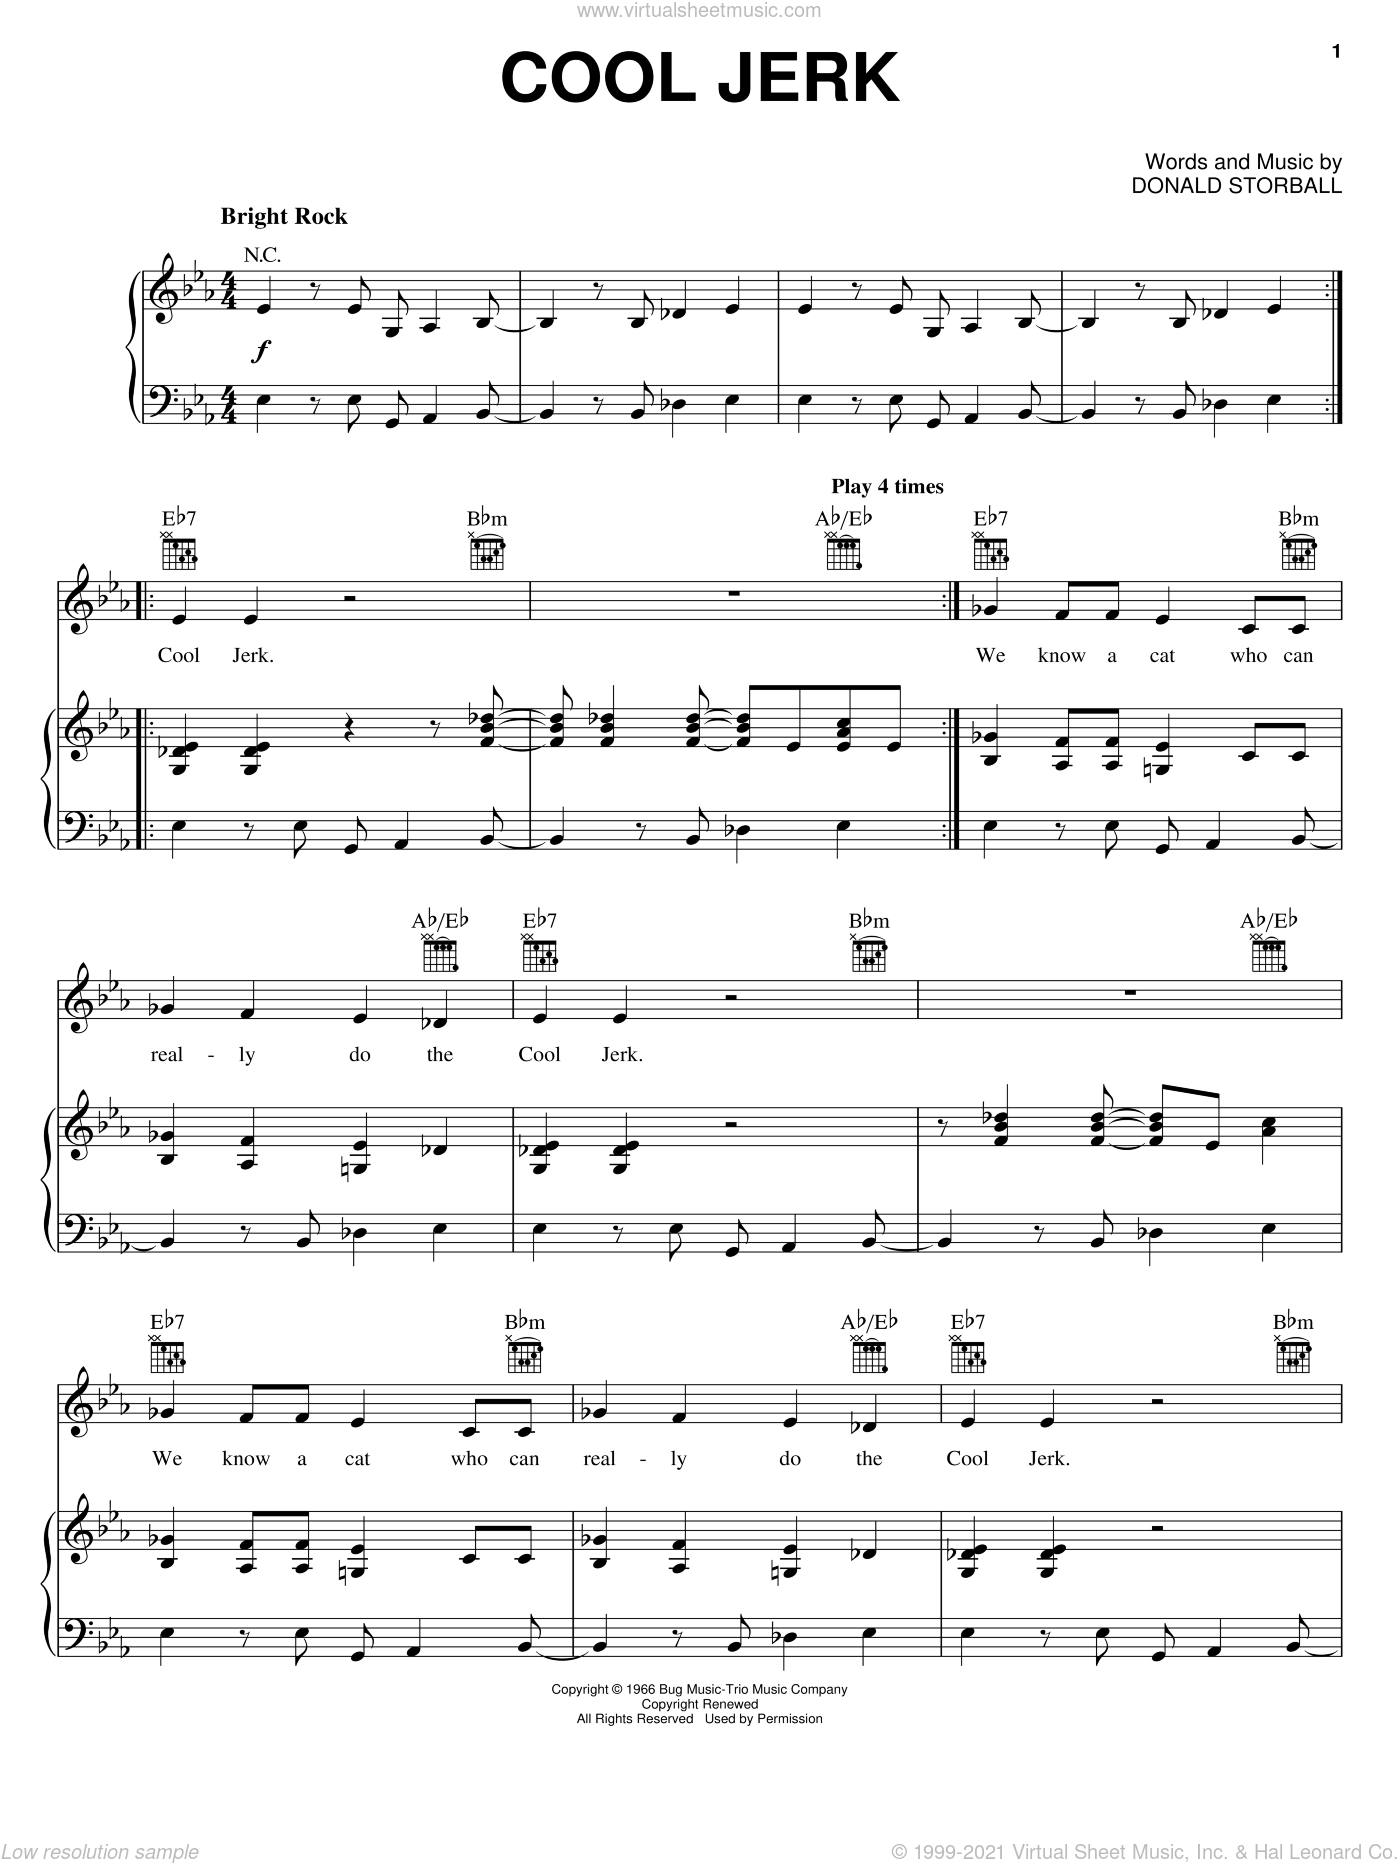 Cool Jerk sheet music for voice, piano or guitar by Donald Storball